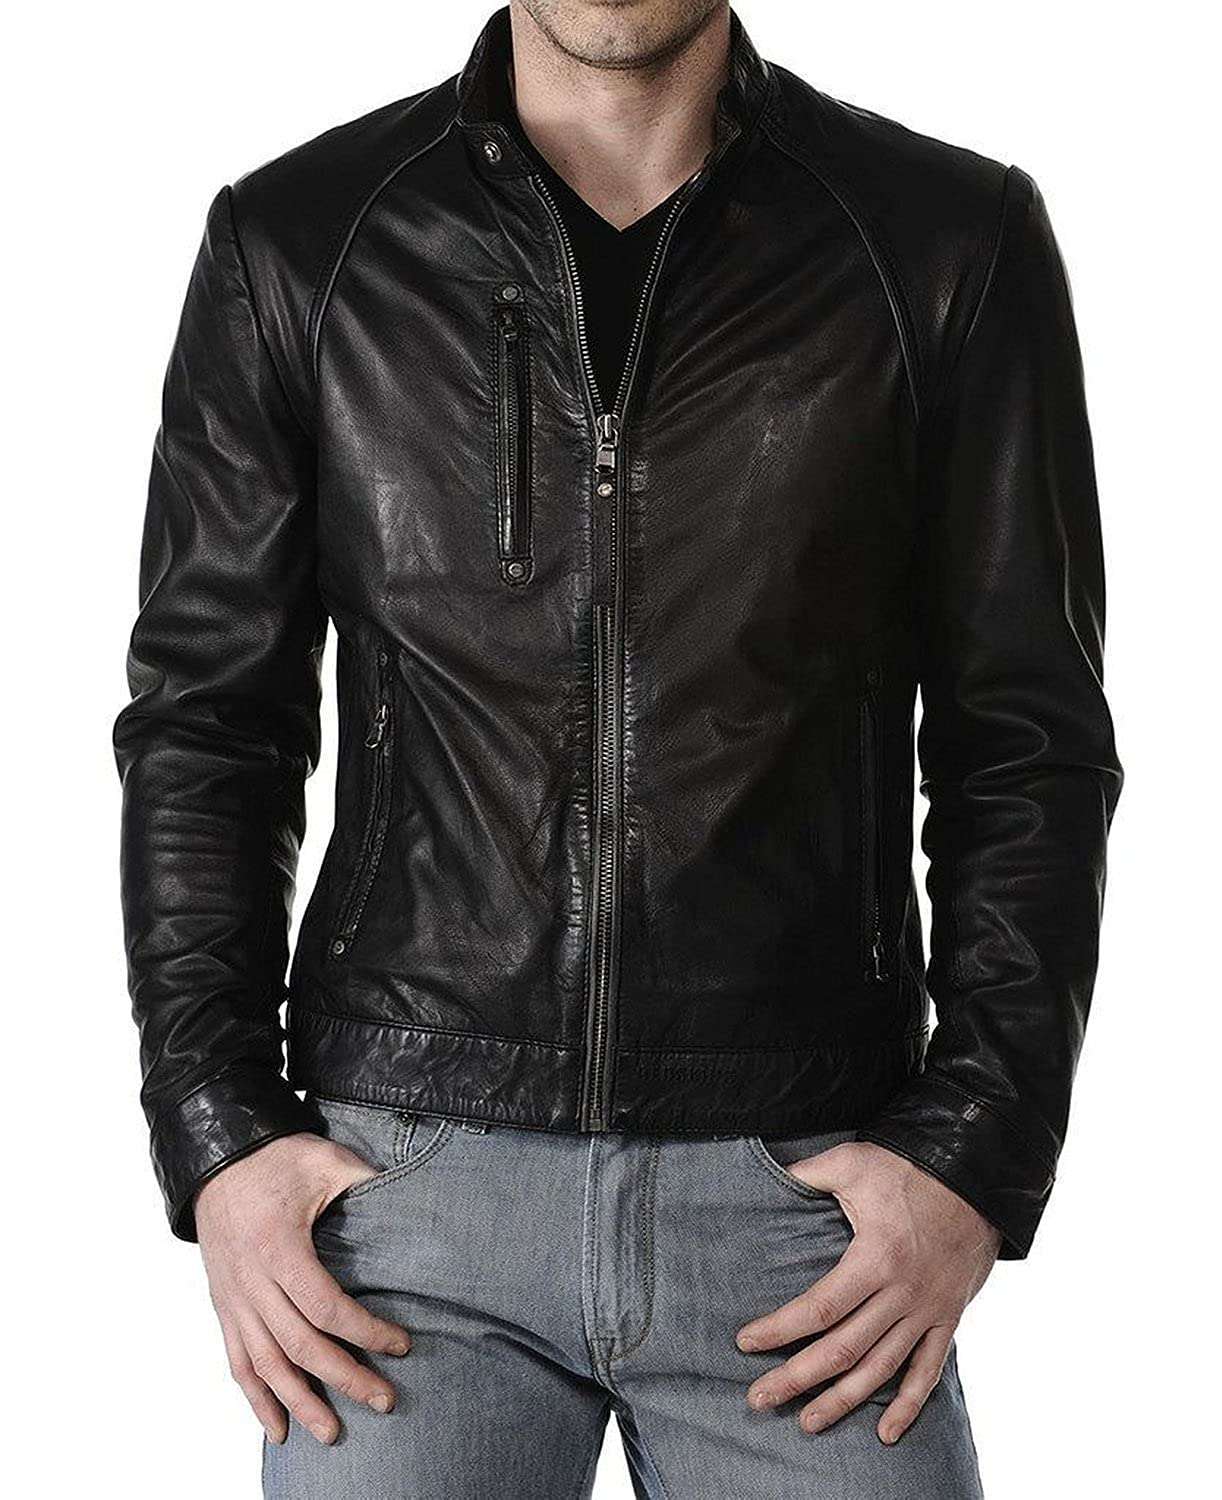 Laverapelle Men's Lambskin Real Leather Jacket Black - 1510295